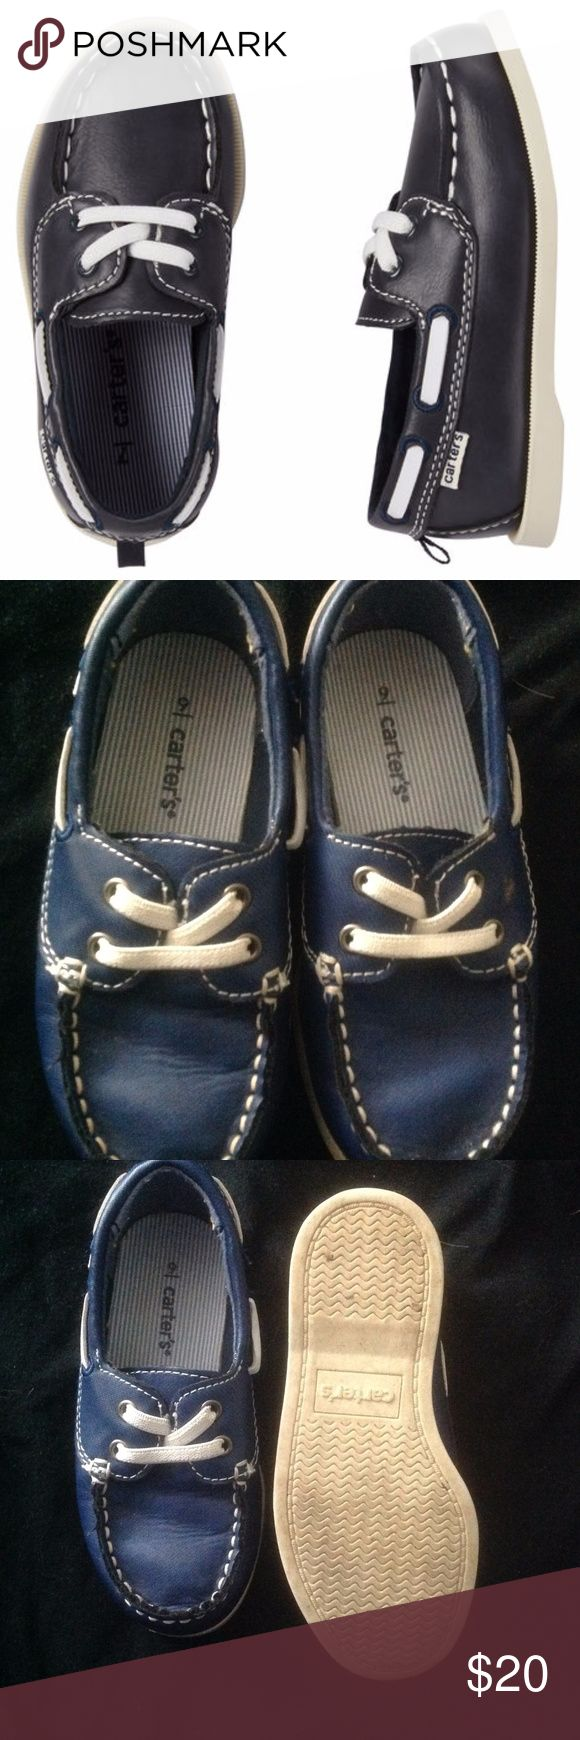 Blue Slip-on Boat Shoes Carter's navy blue boat shoes size 9. Worn once. Equipped with padded insoles and contrasting details, Padded insole, Elastic laces Carter's Shoes